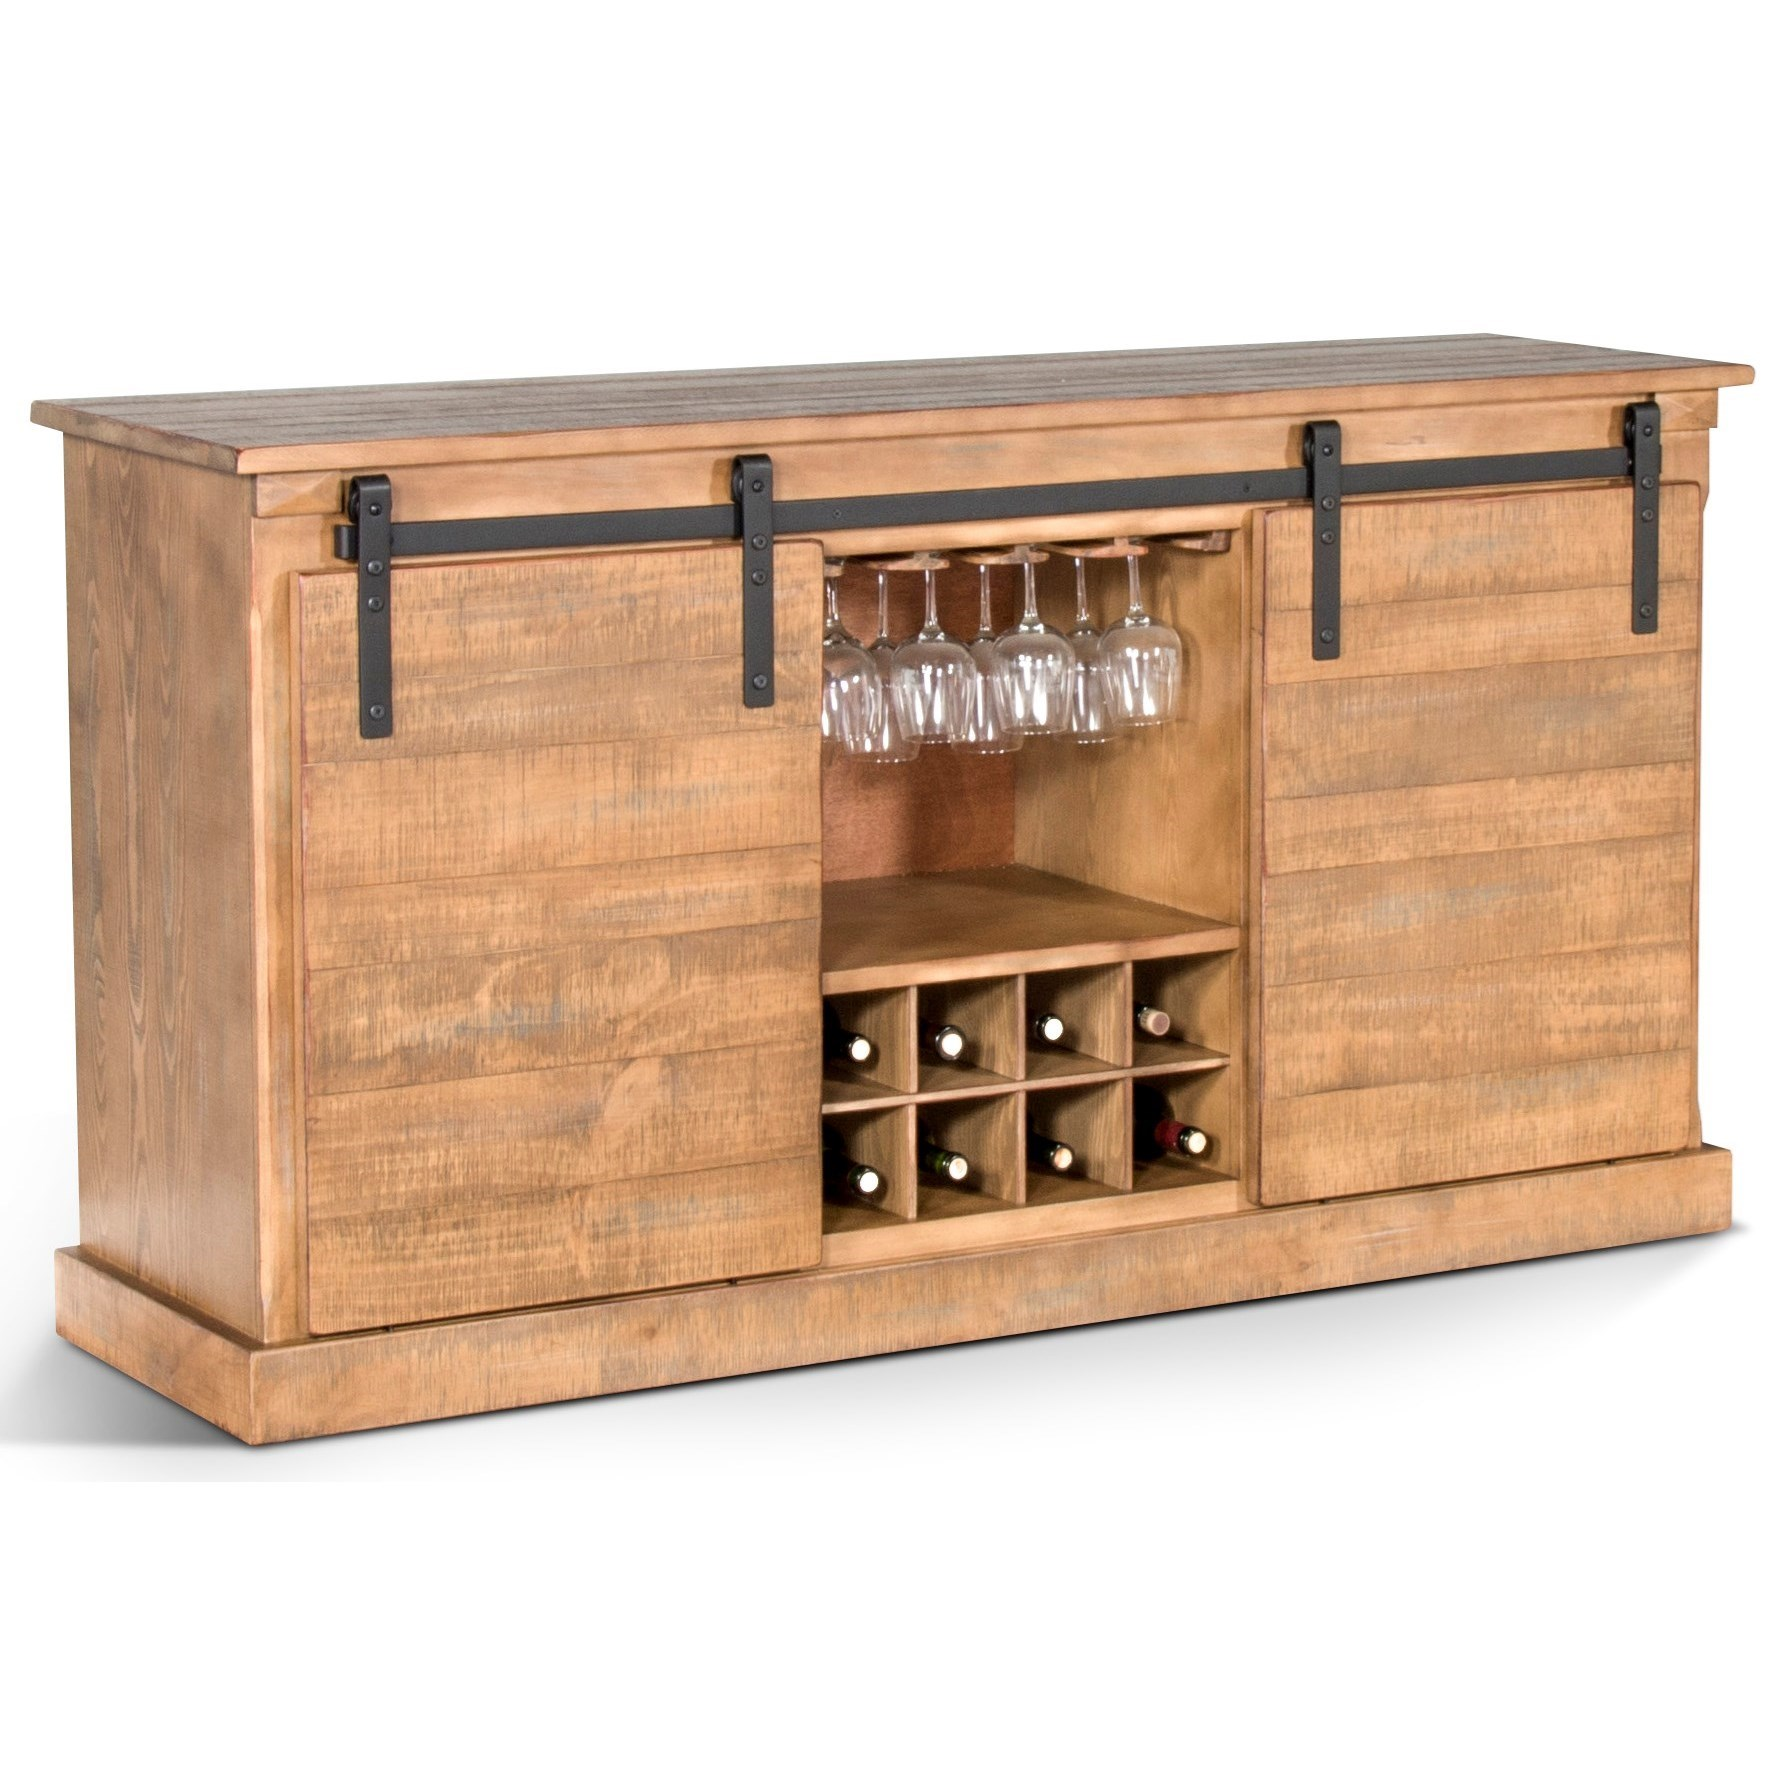 "3577 65"" TV Stand w/ Wine Rack & Barn Door by Sunny Designs at Factory Direct Furniture"